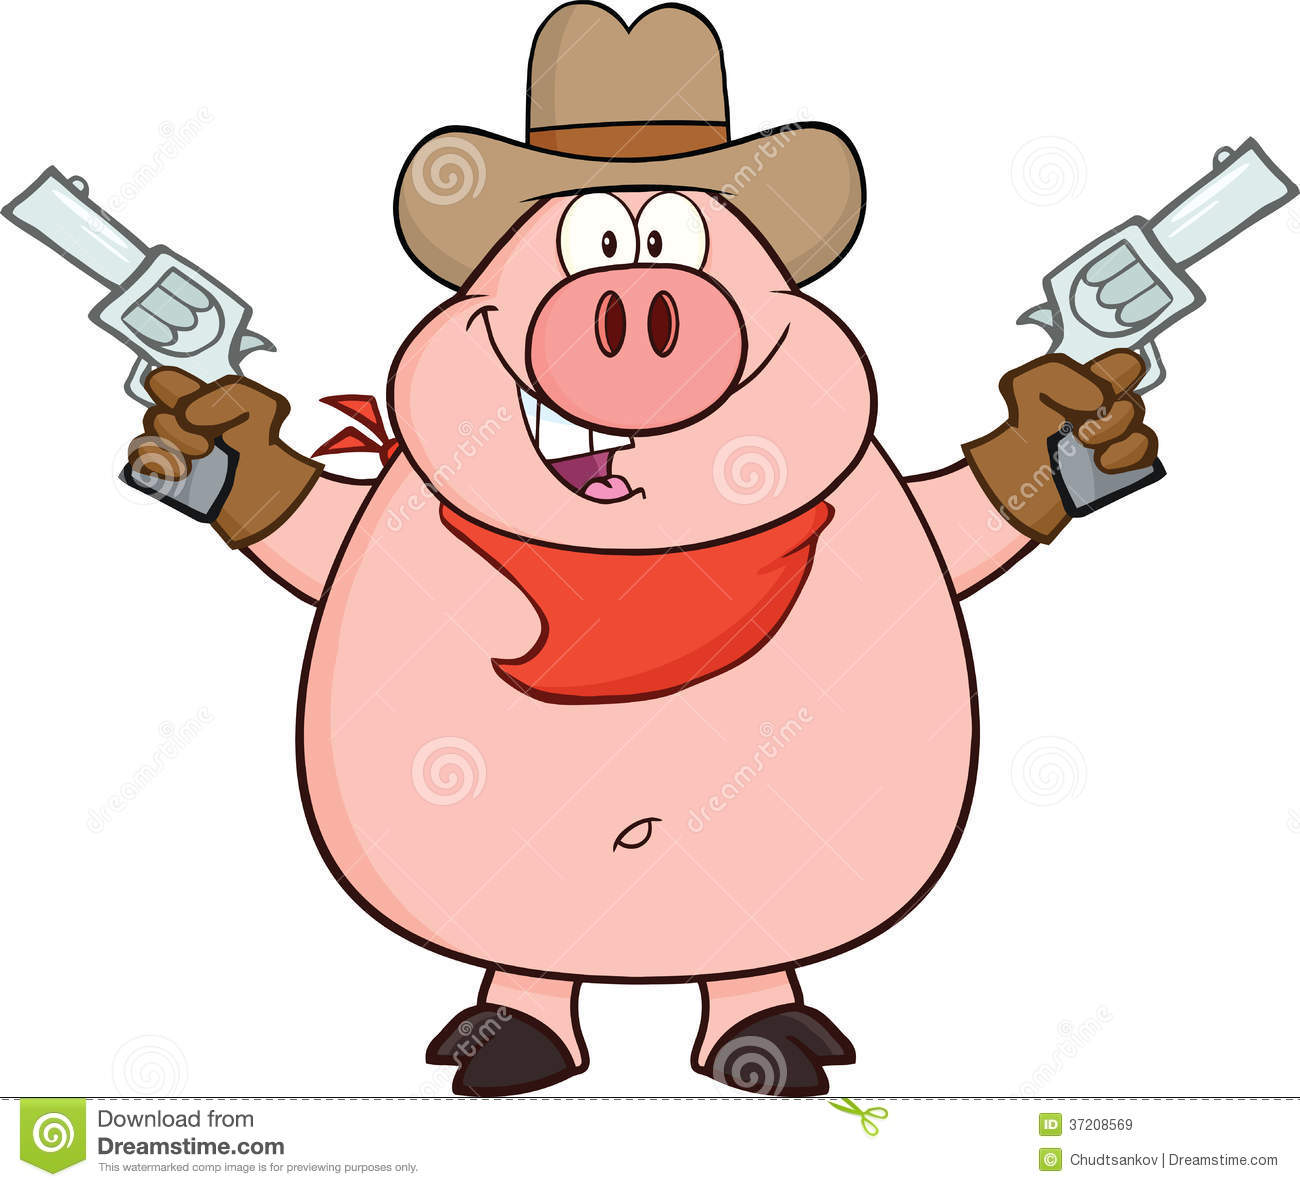 Royalty Free Stock Images: Cowboy Pig Cartoon Character Holding Up Two ...